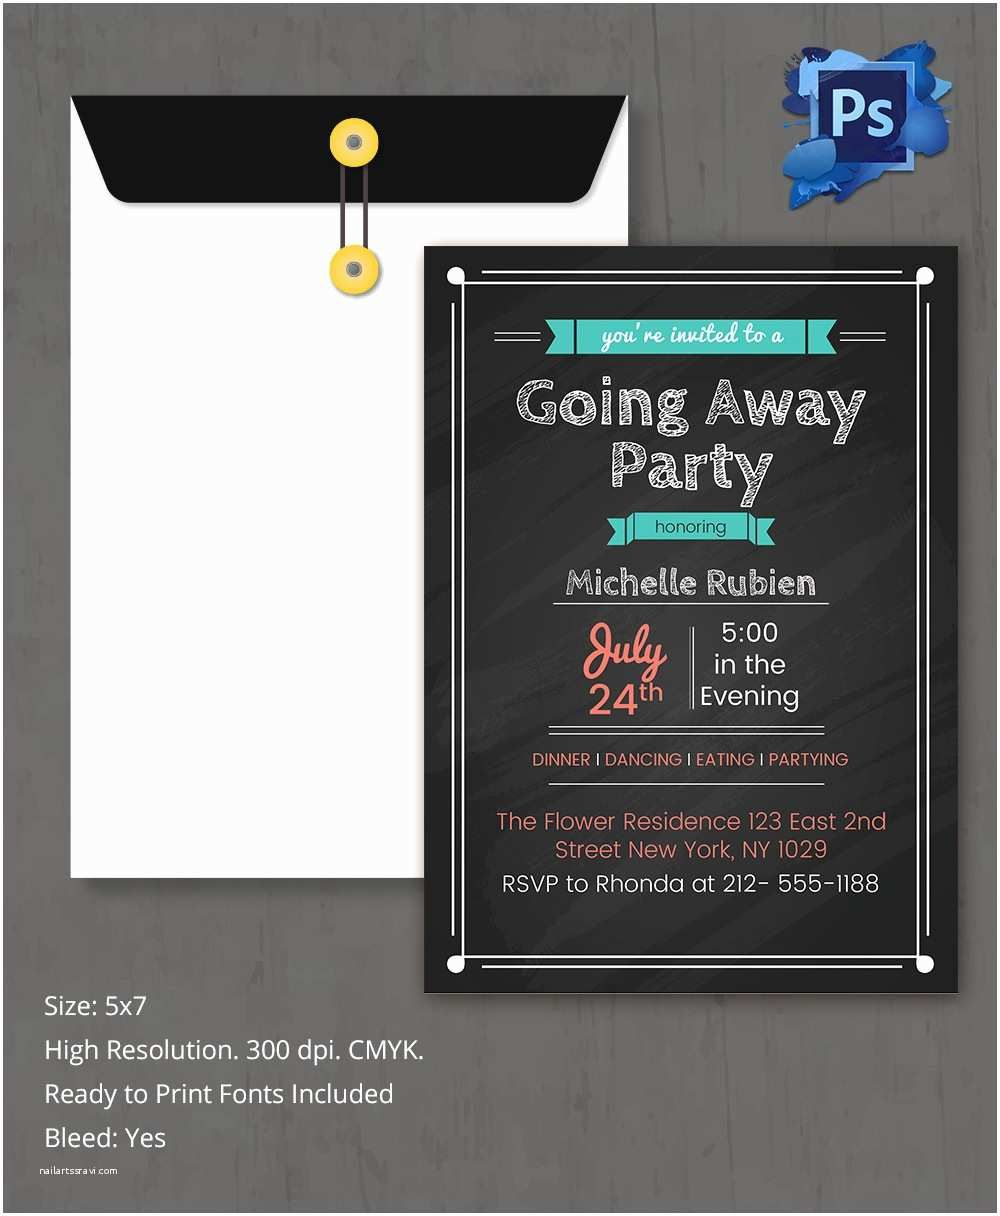 009 Simple Going Away Party Invitation Template Idea  Free PrintableFull